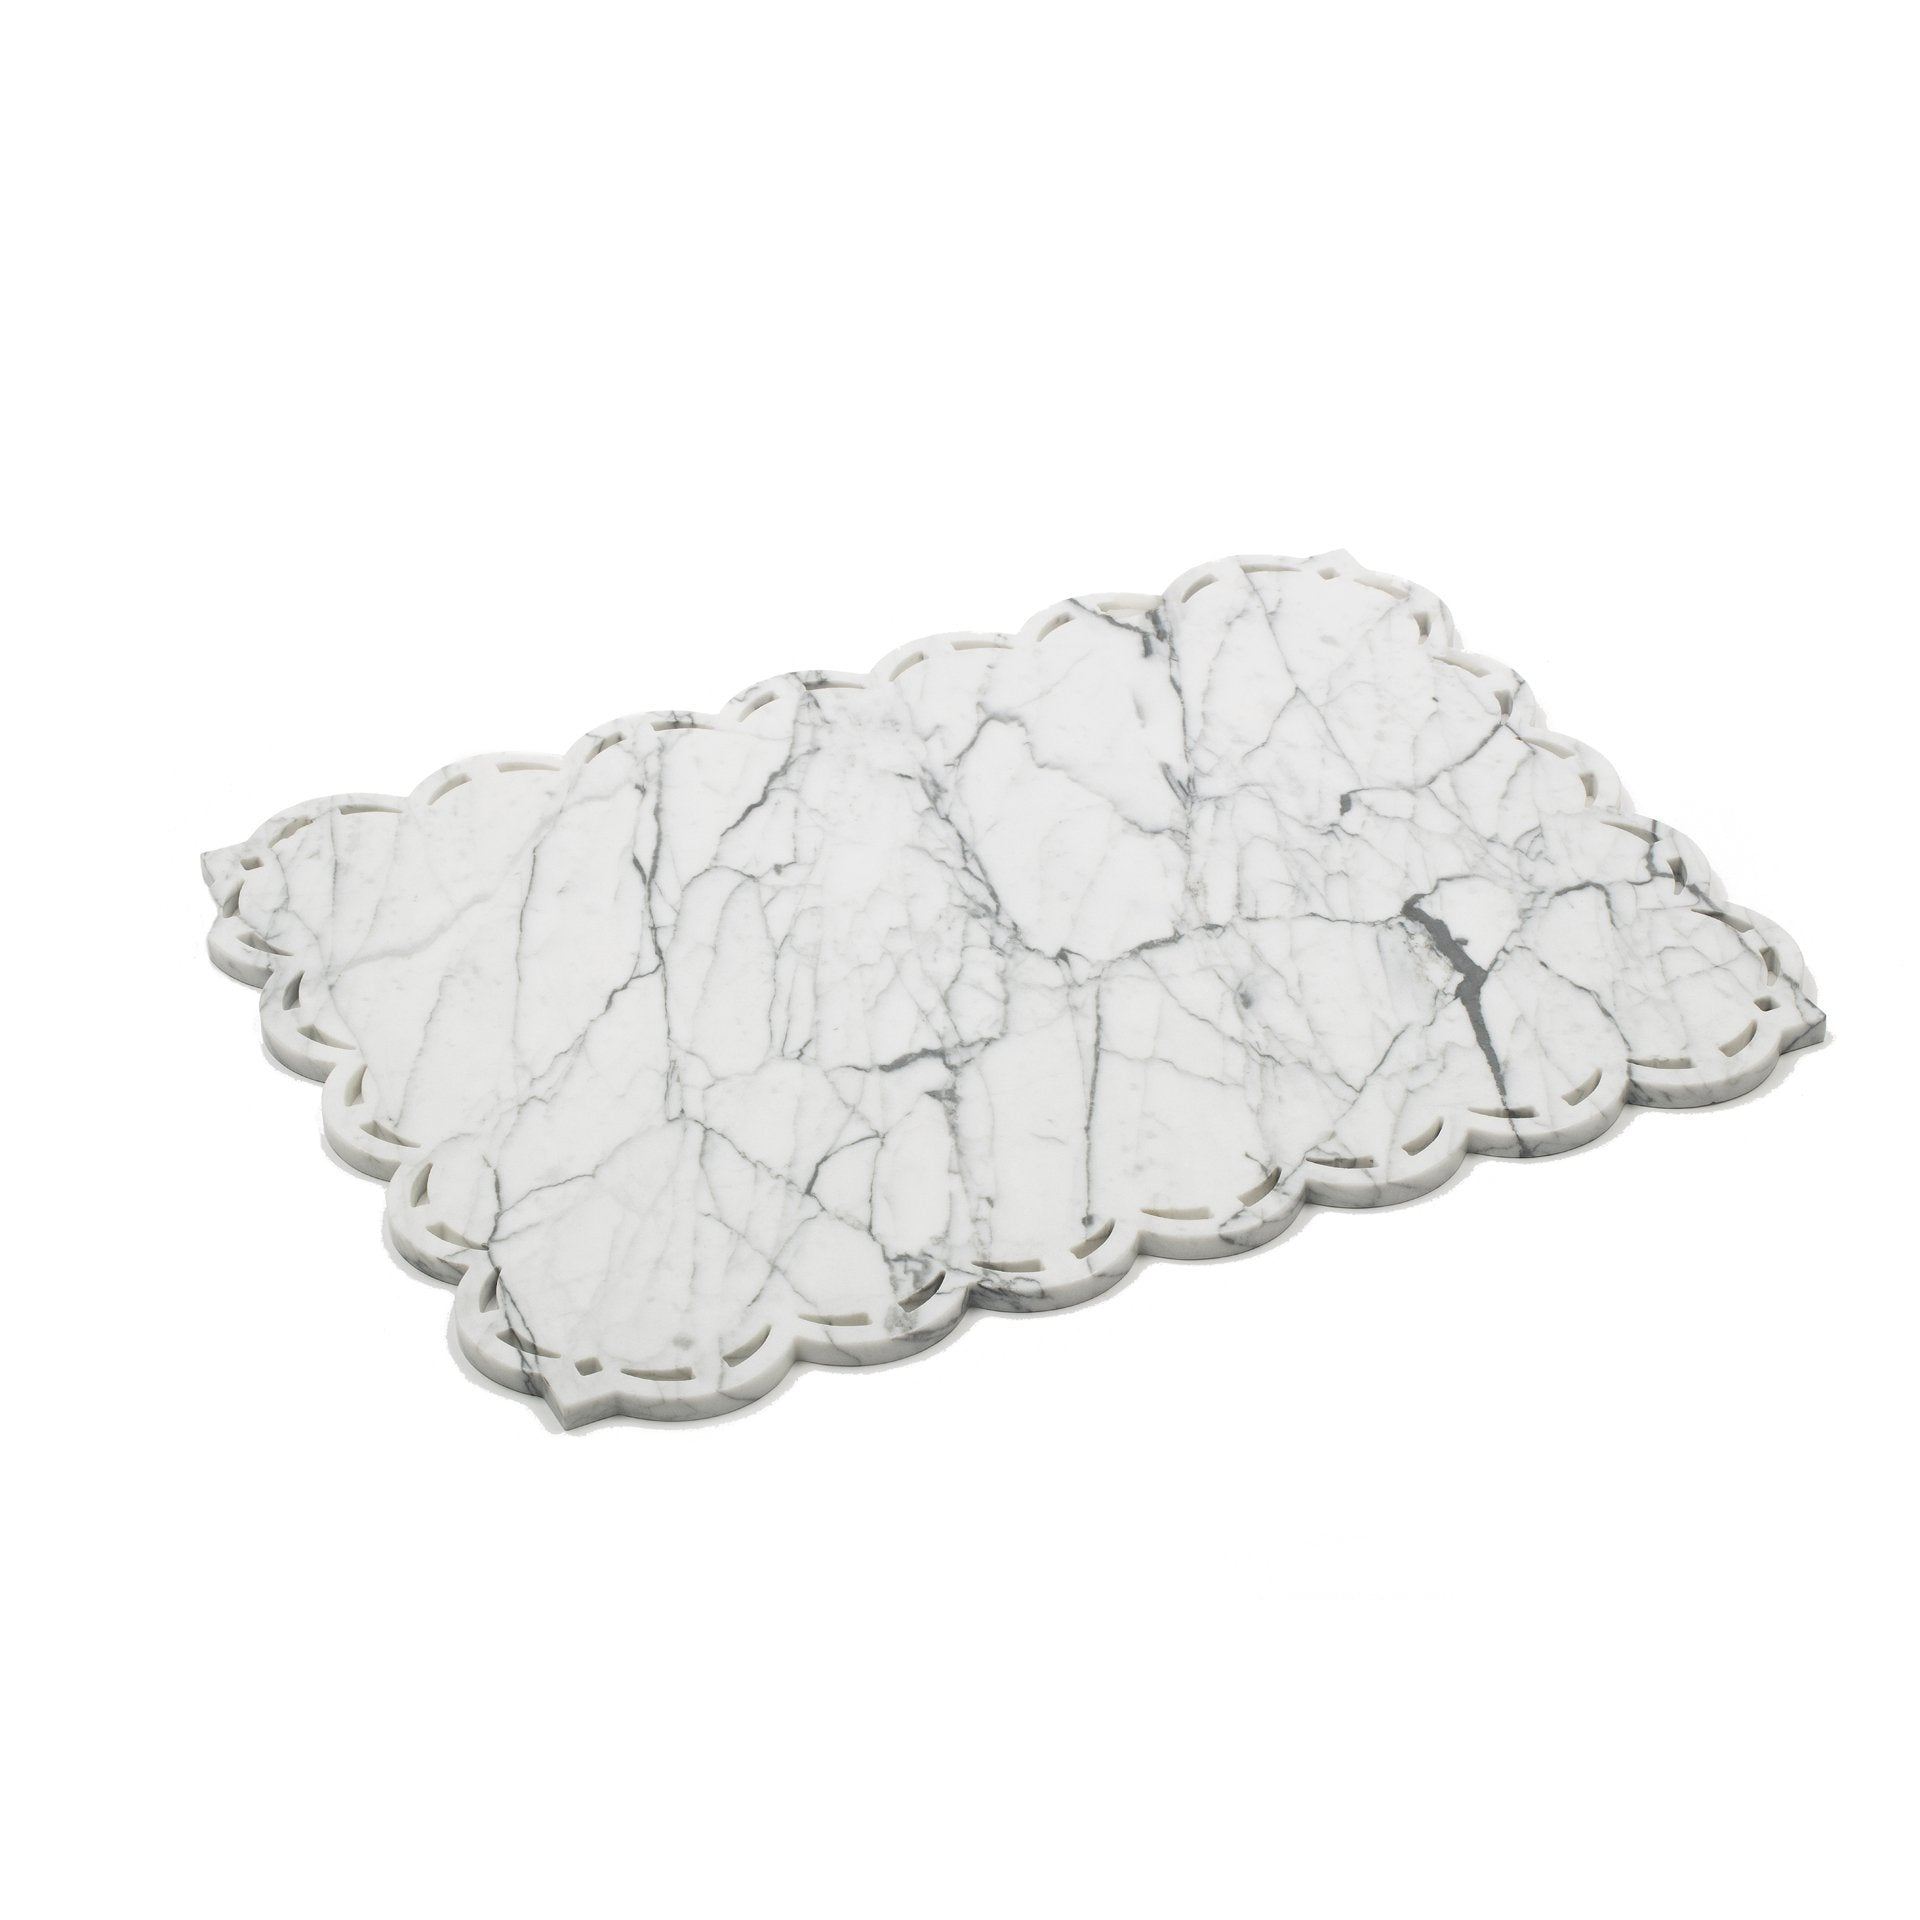 Mobj87_Square Marble Placemat - Tray with Lace Edge